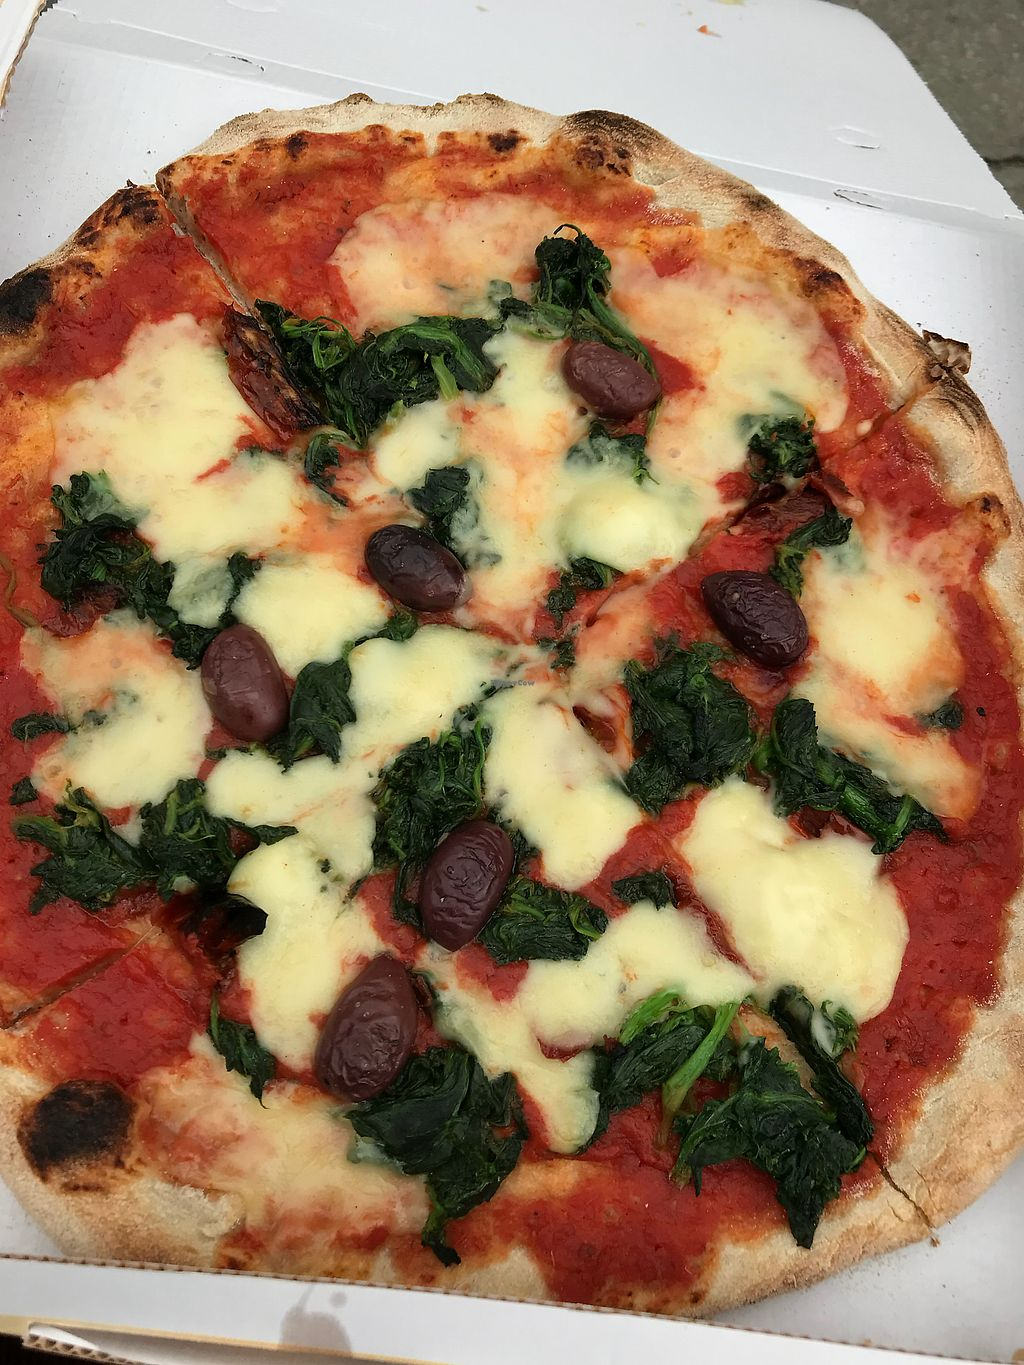 """Photo of Pizzeria L'Angelo  by <a href=""""/members/profile/AbbiCastle"""">AbbiCastle</a> <br/>very gooey! and filling! yummy! <br/> April 16, 2018  - <a href='/contact/abuse/image/44673/386760'>Report</a>"""